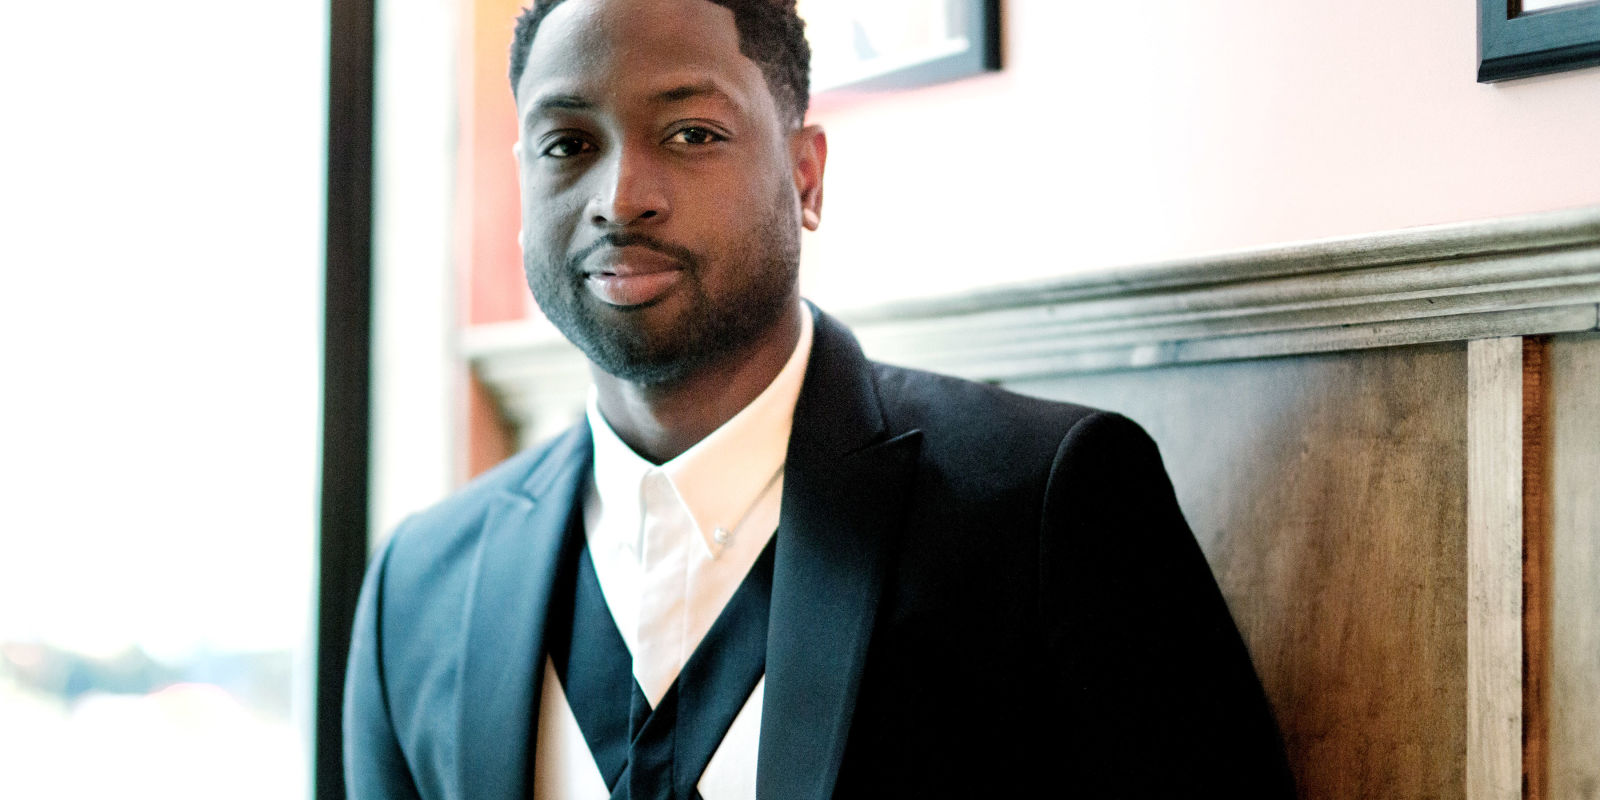 Dwyane Wade Partnered Up With Amazon - Dwyane Wade Opens Amazon Pop-Up Shop